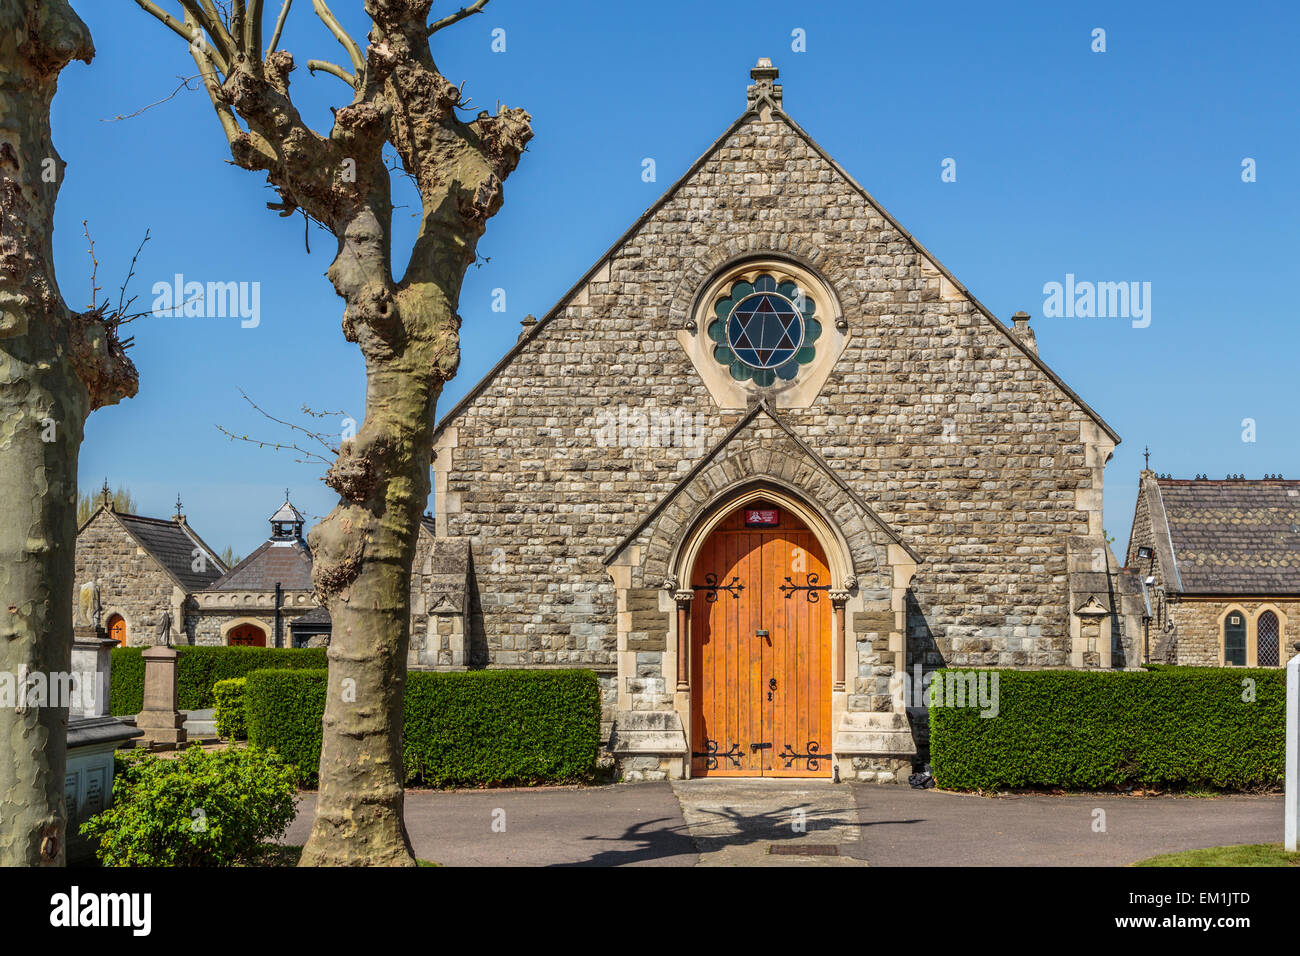 Willesden Jewish Cemetery Prayer Hall, London, England UK - Stock Image